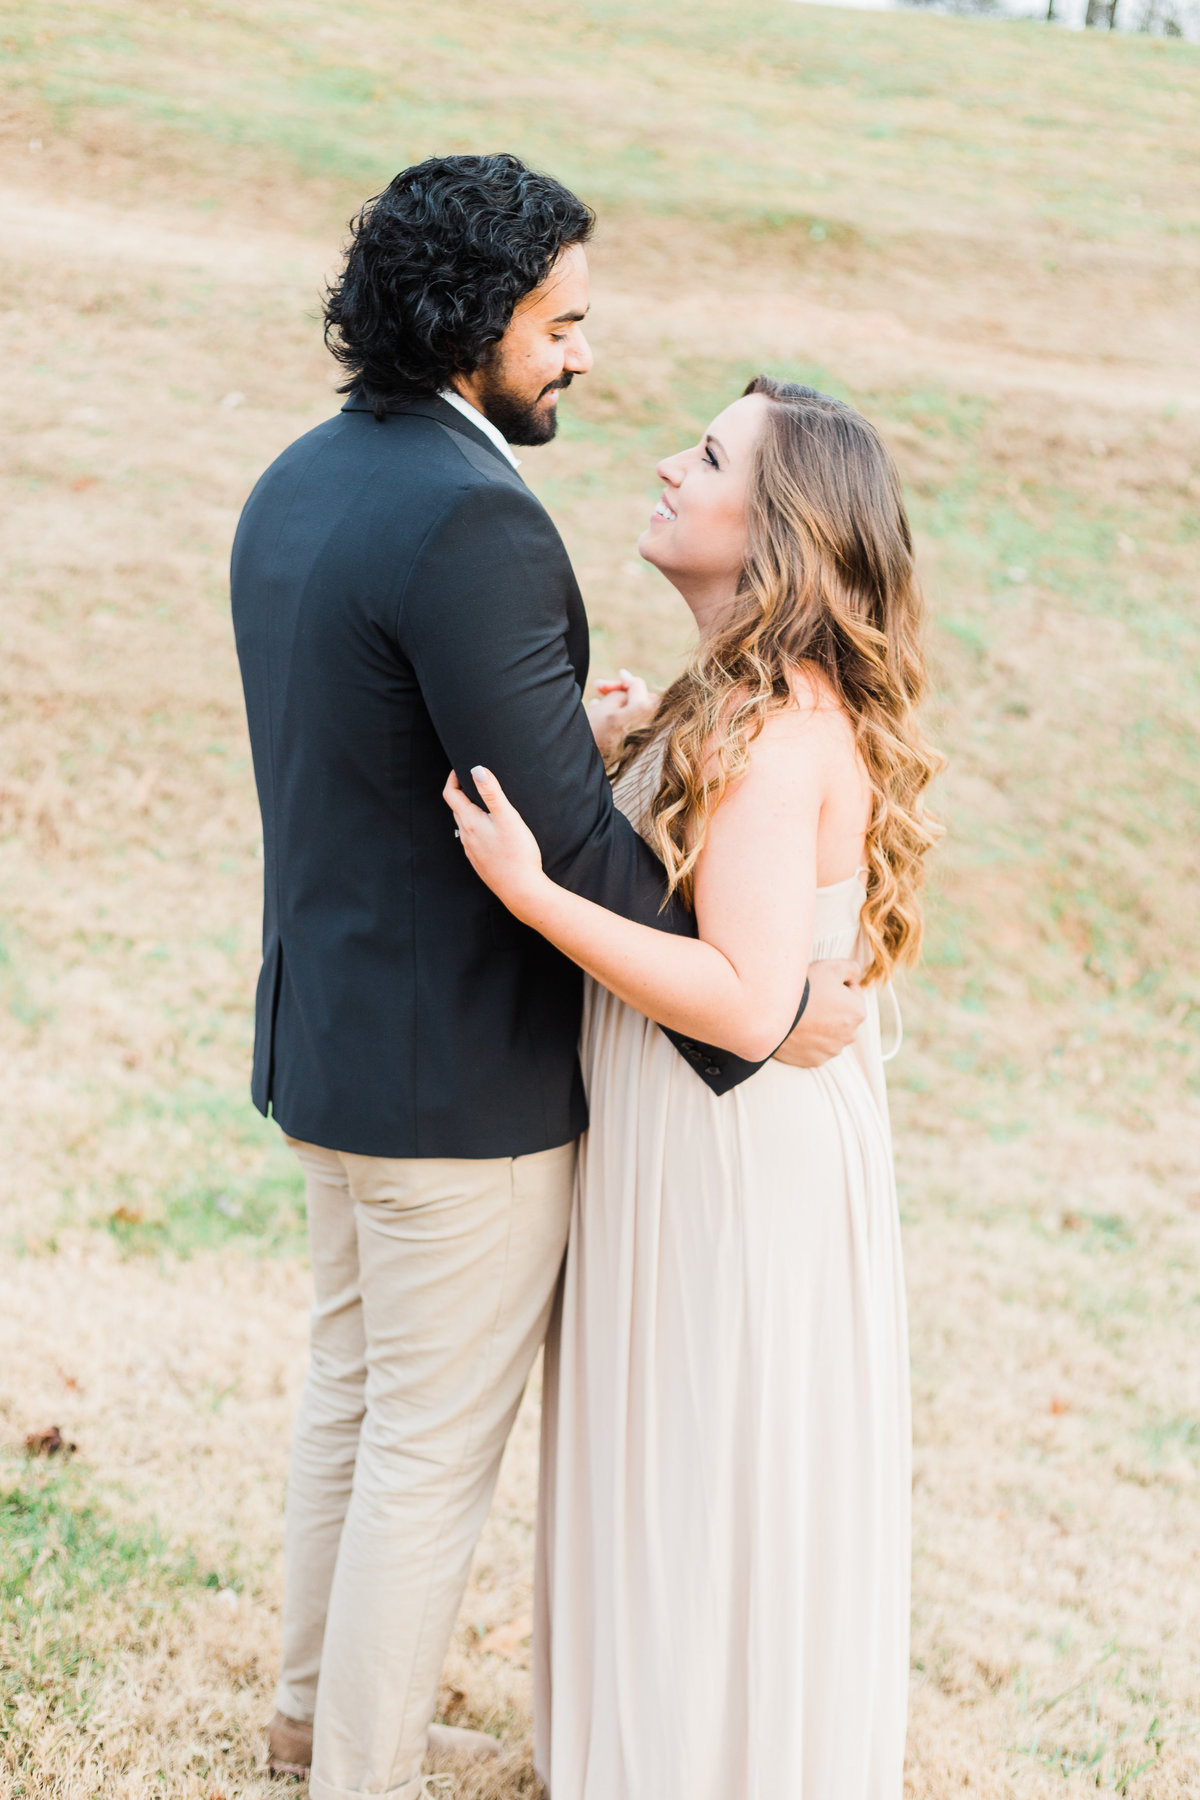 Motaluce Winery, Gainesville, GA Couple Engagement Anniversary Photography Session by Renee Jael-27